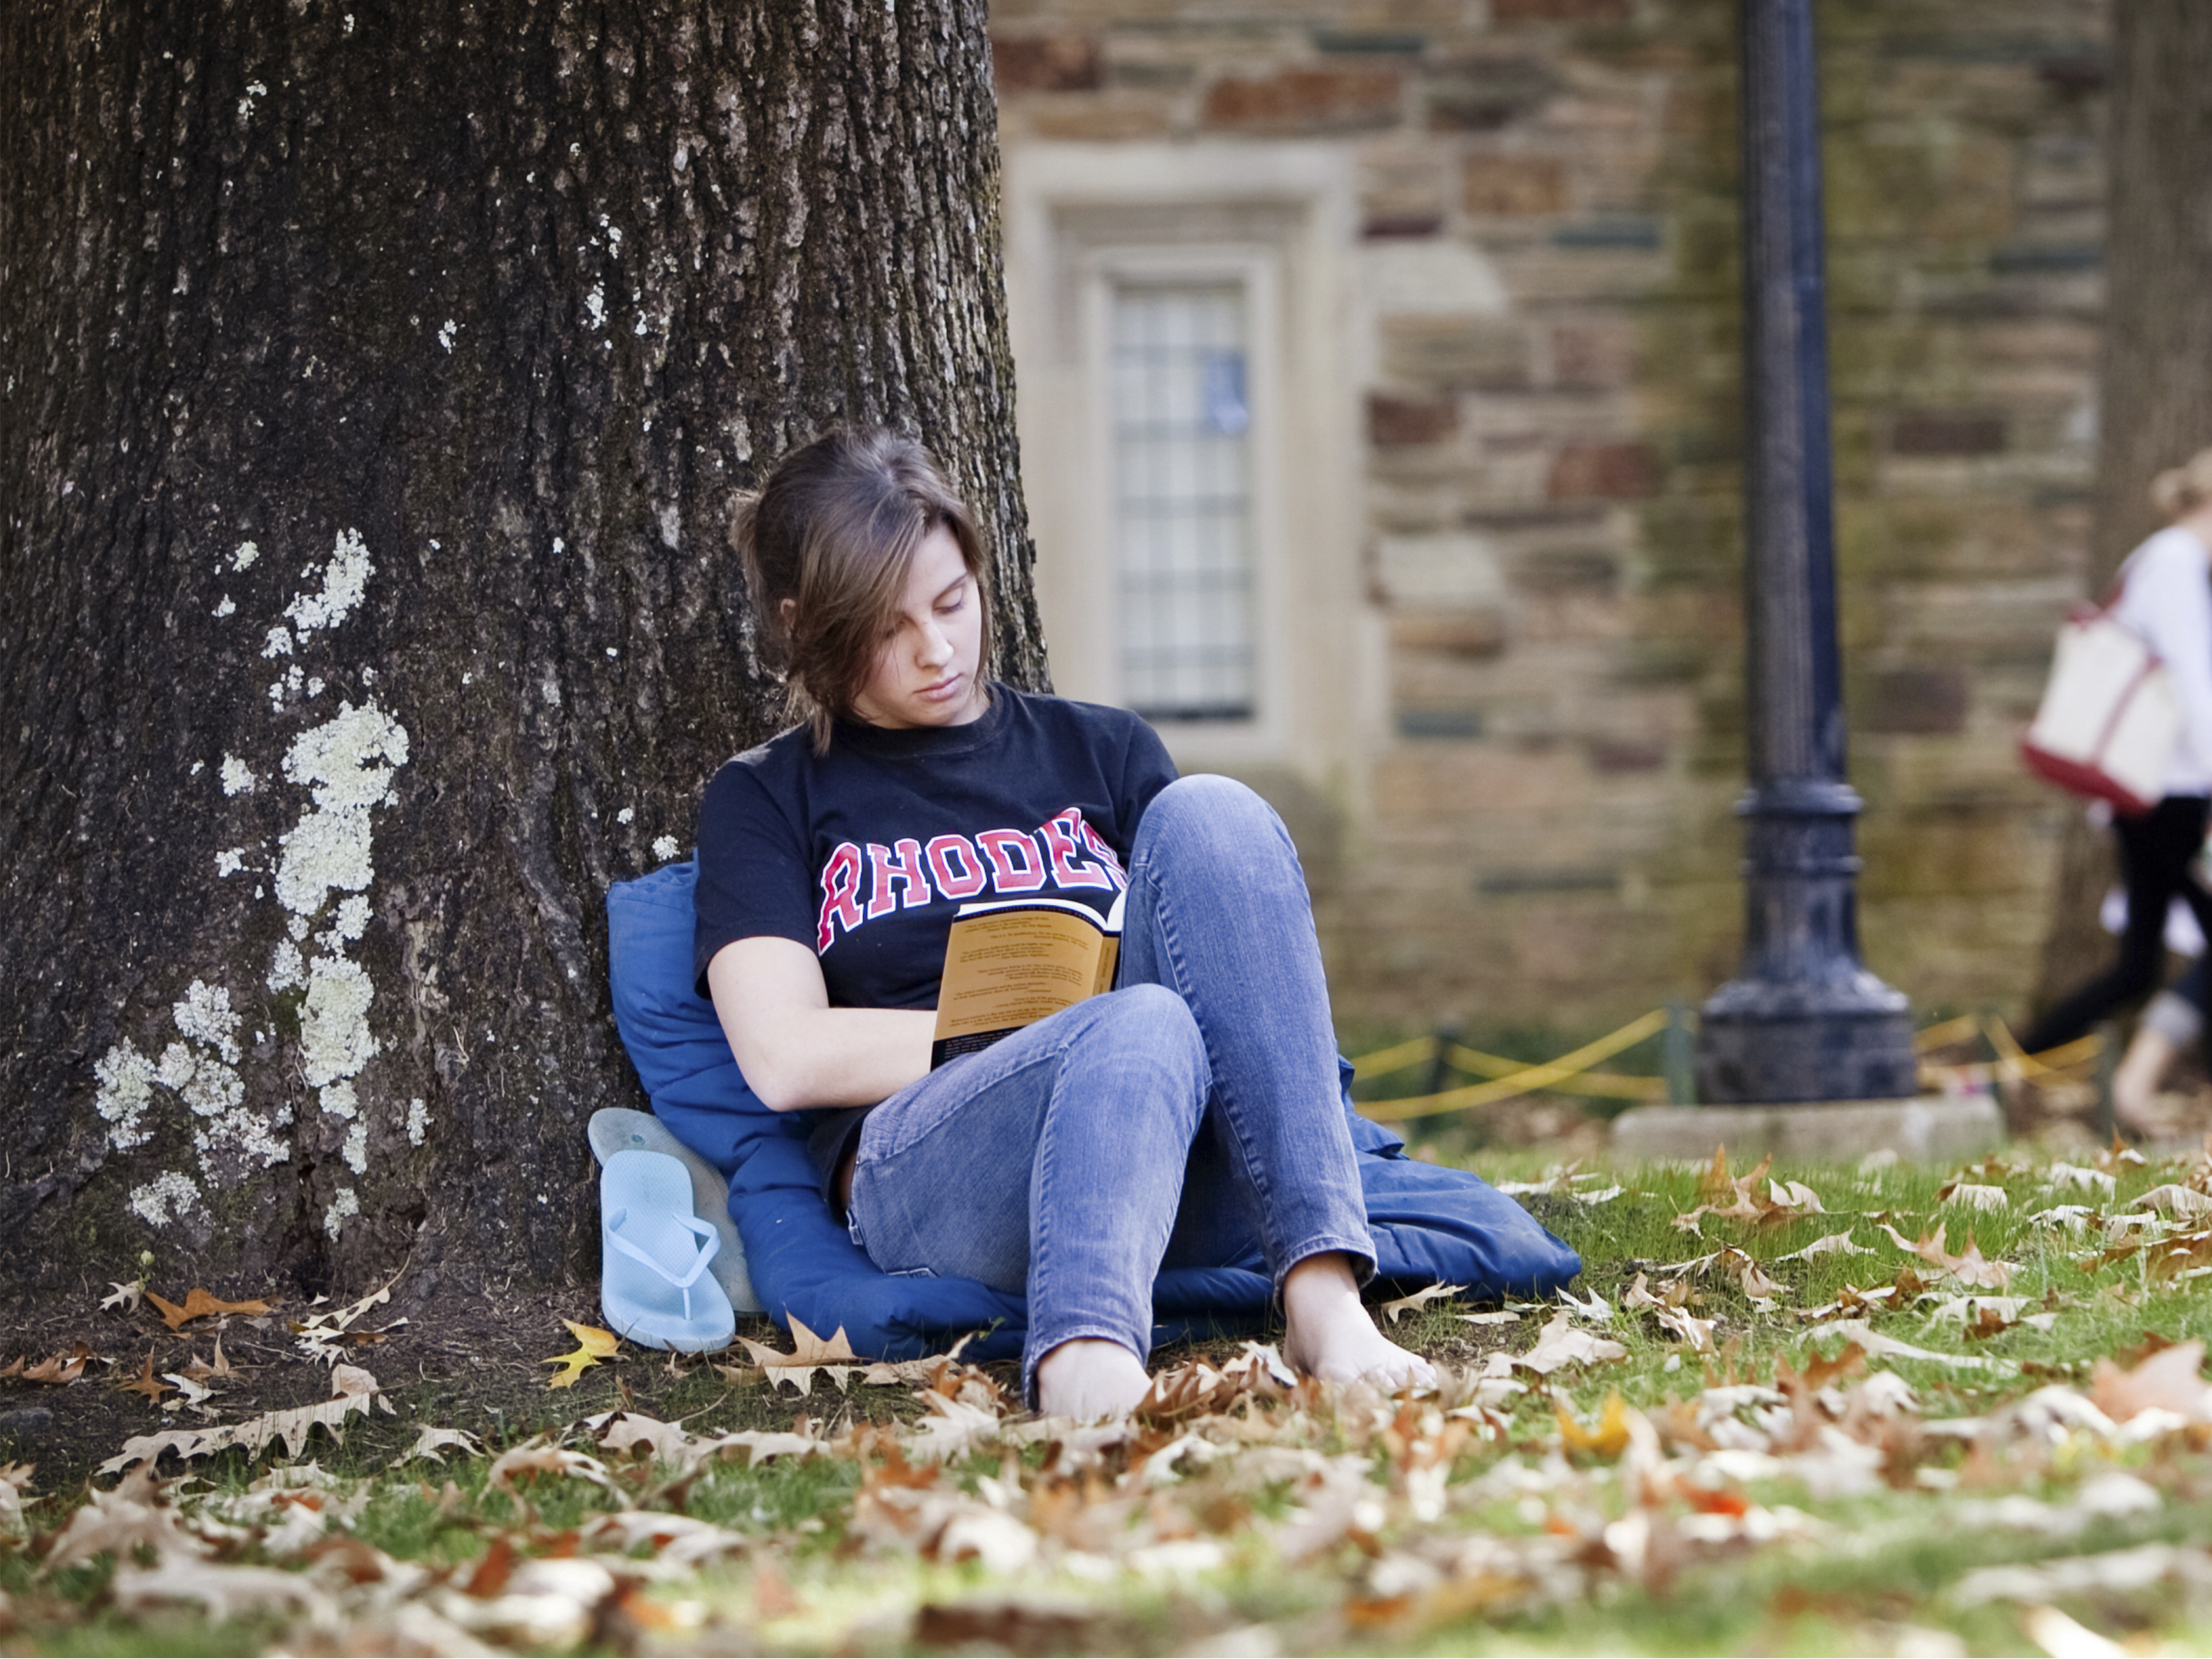 A barefoot young woman in a Rhodes tshirt and jeans sits leaning against a tree reading a book.